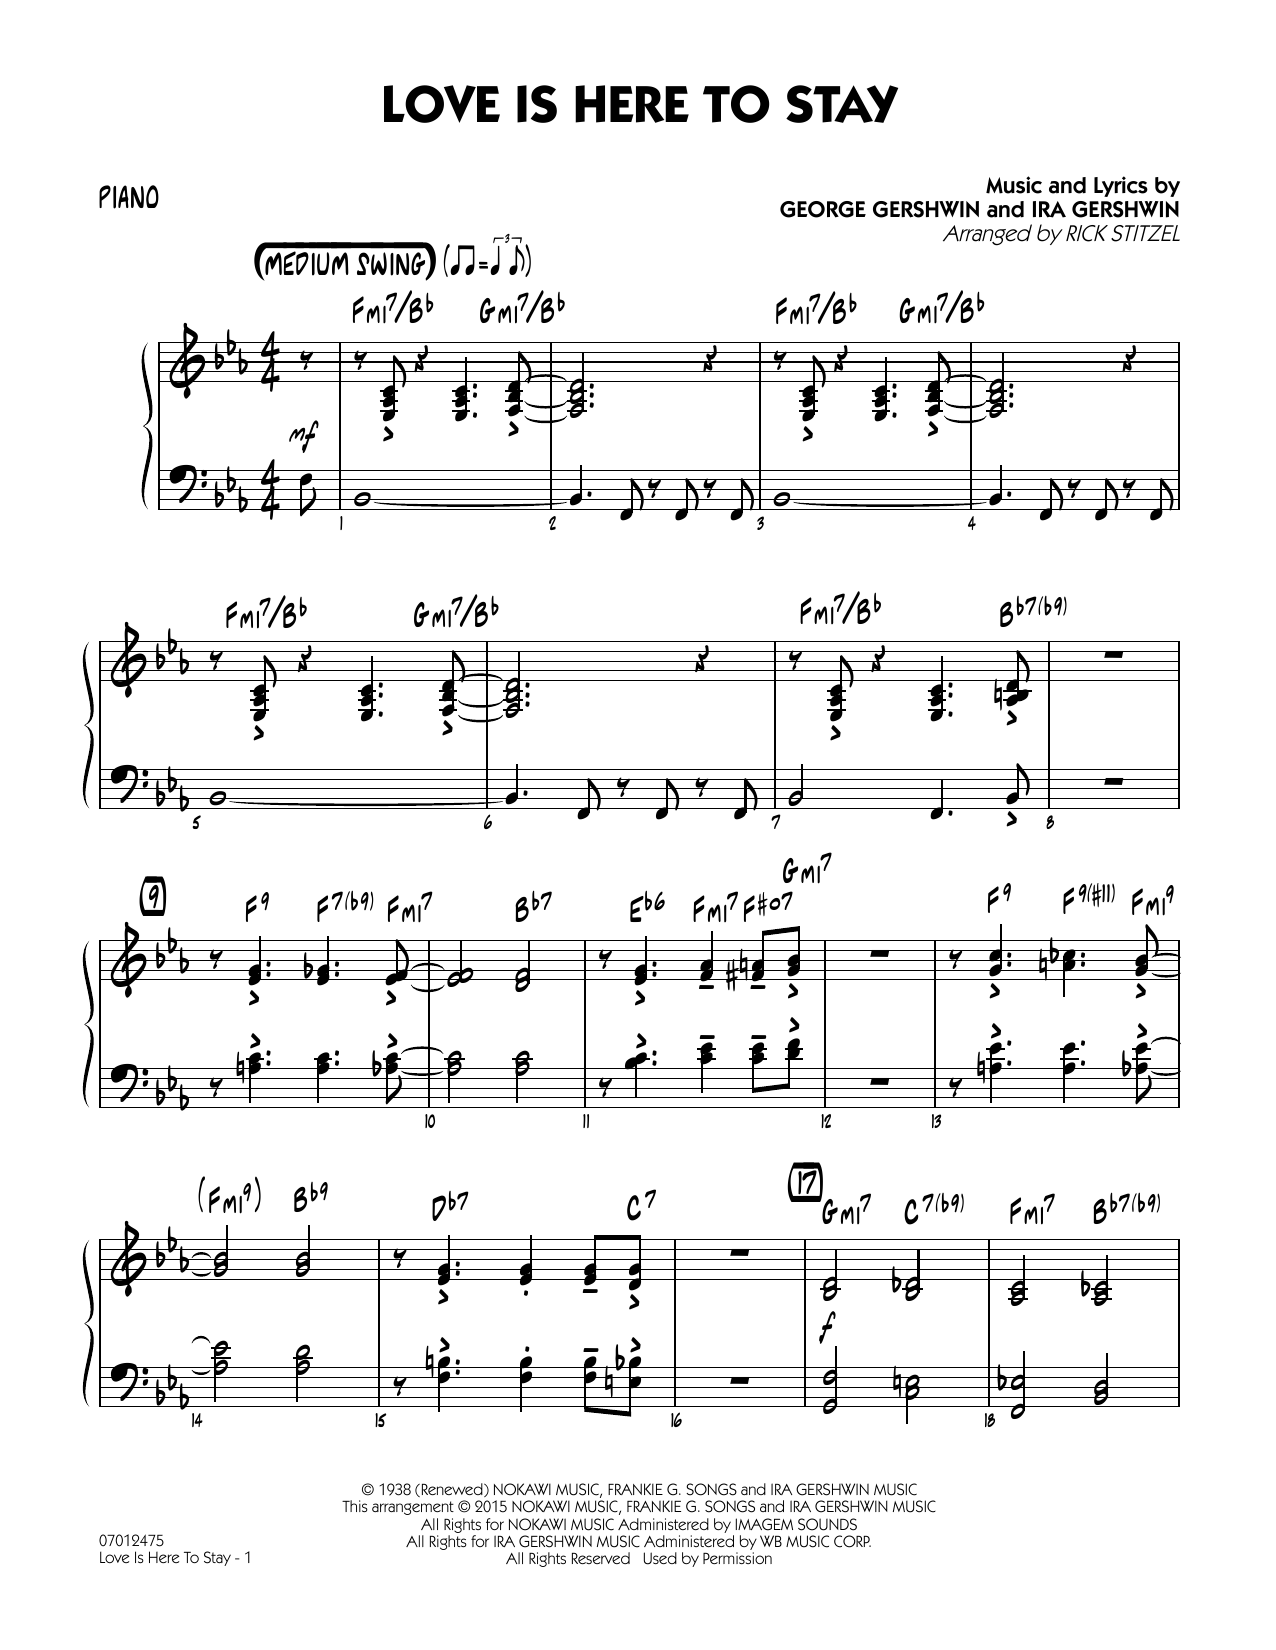 Love Is Here To Stay - Piano by Ira Gershwin, George Gershwin  George Gershwin